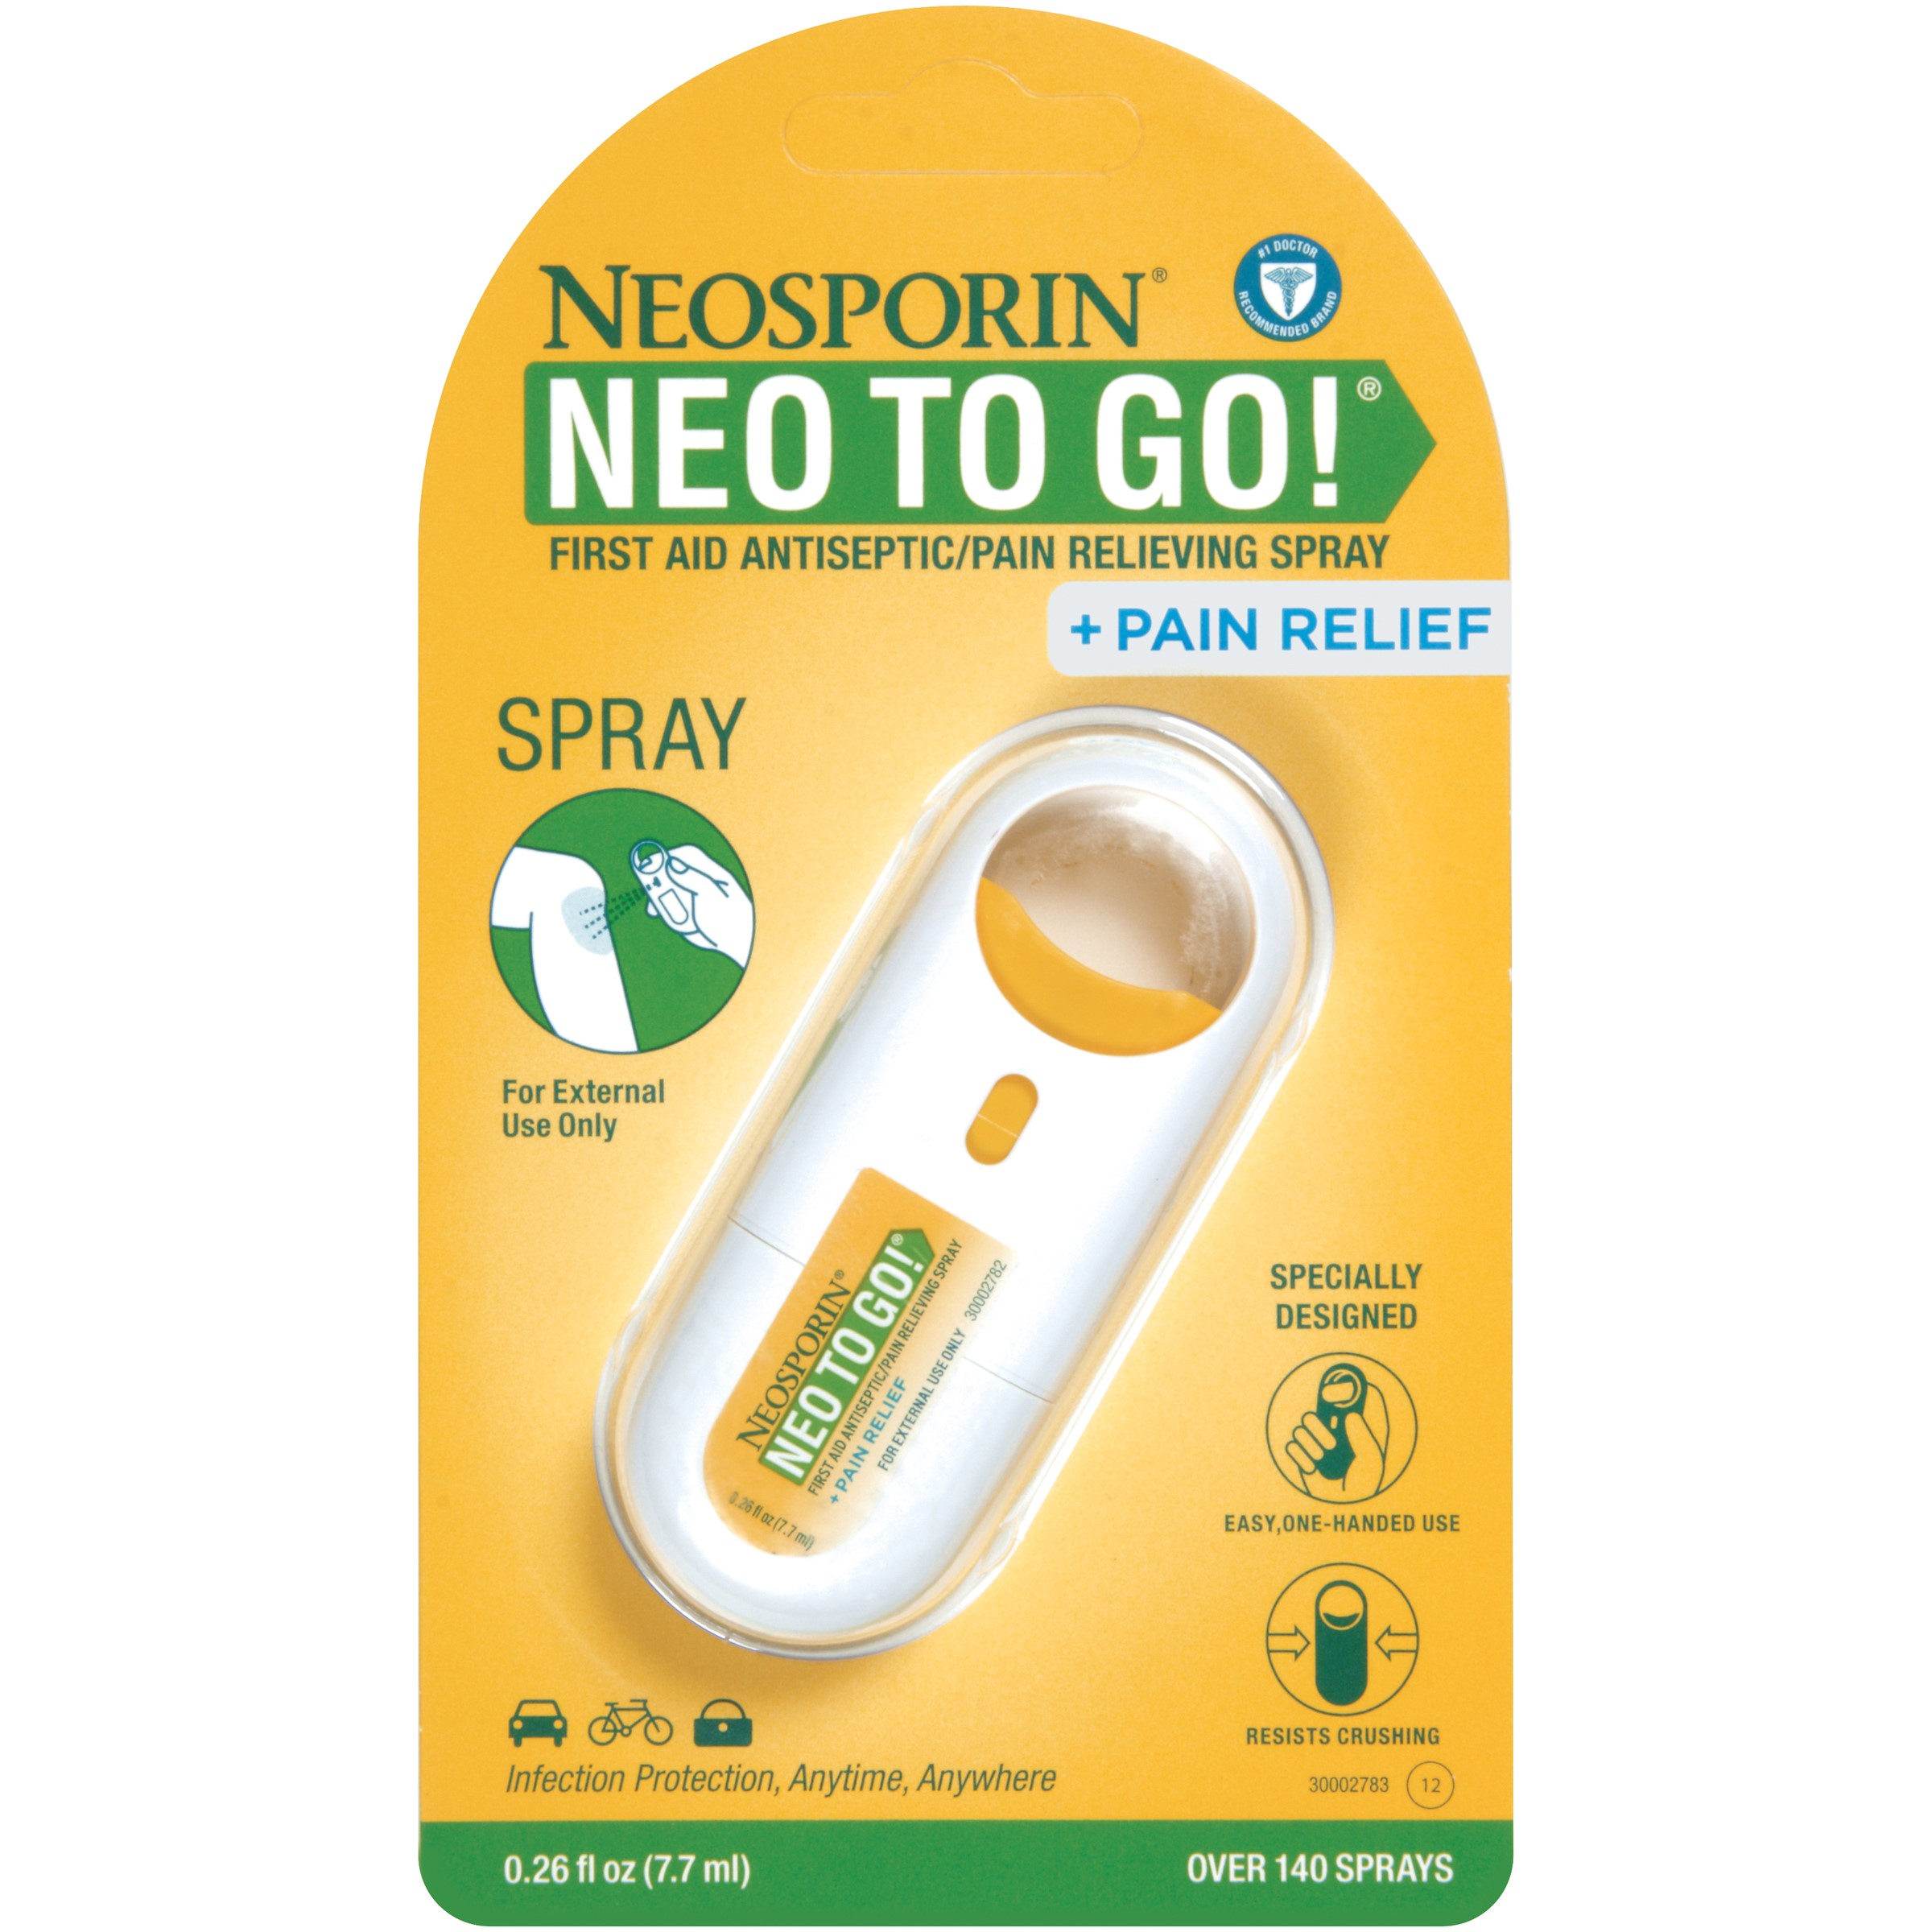 Neosporin To Go Spray, First Aid Antiseptic by Johnson & Johnson